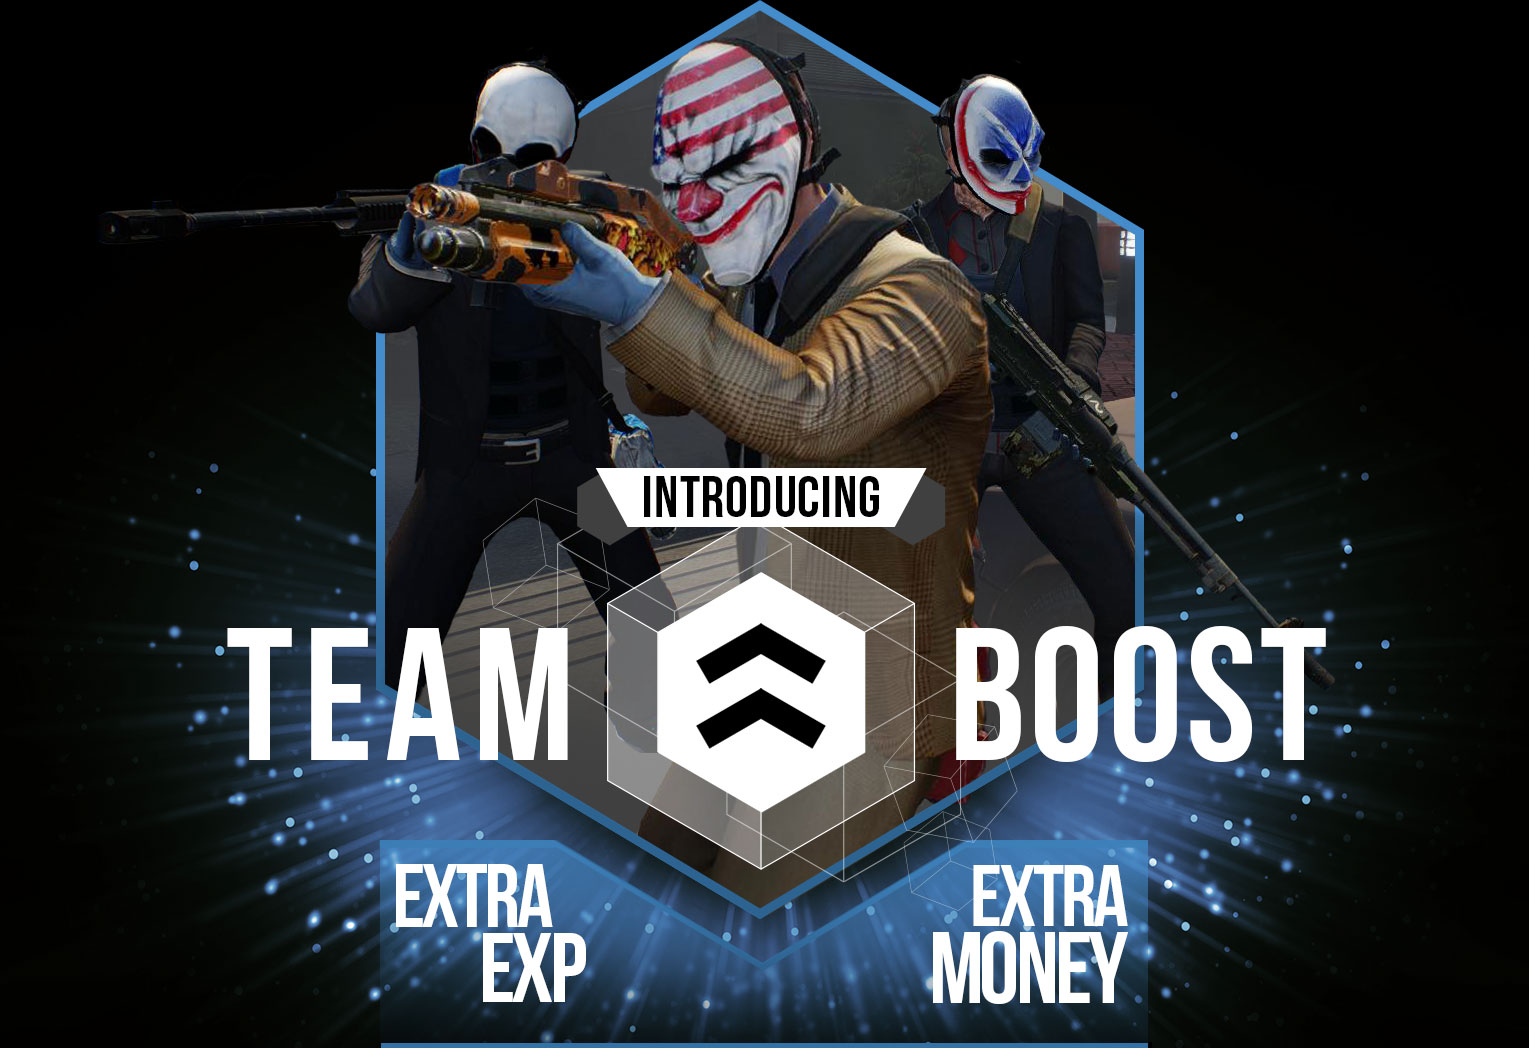 Introducing Team Boost